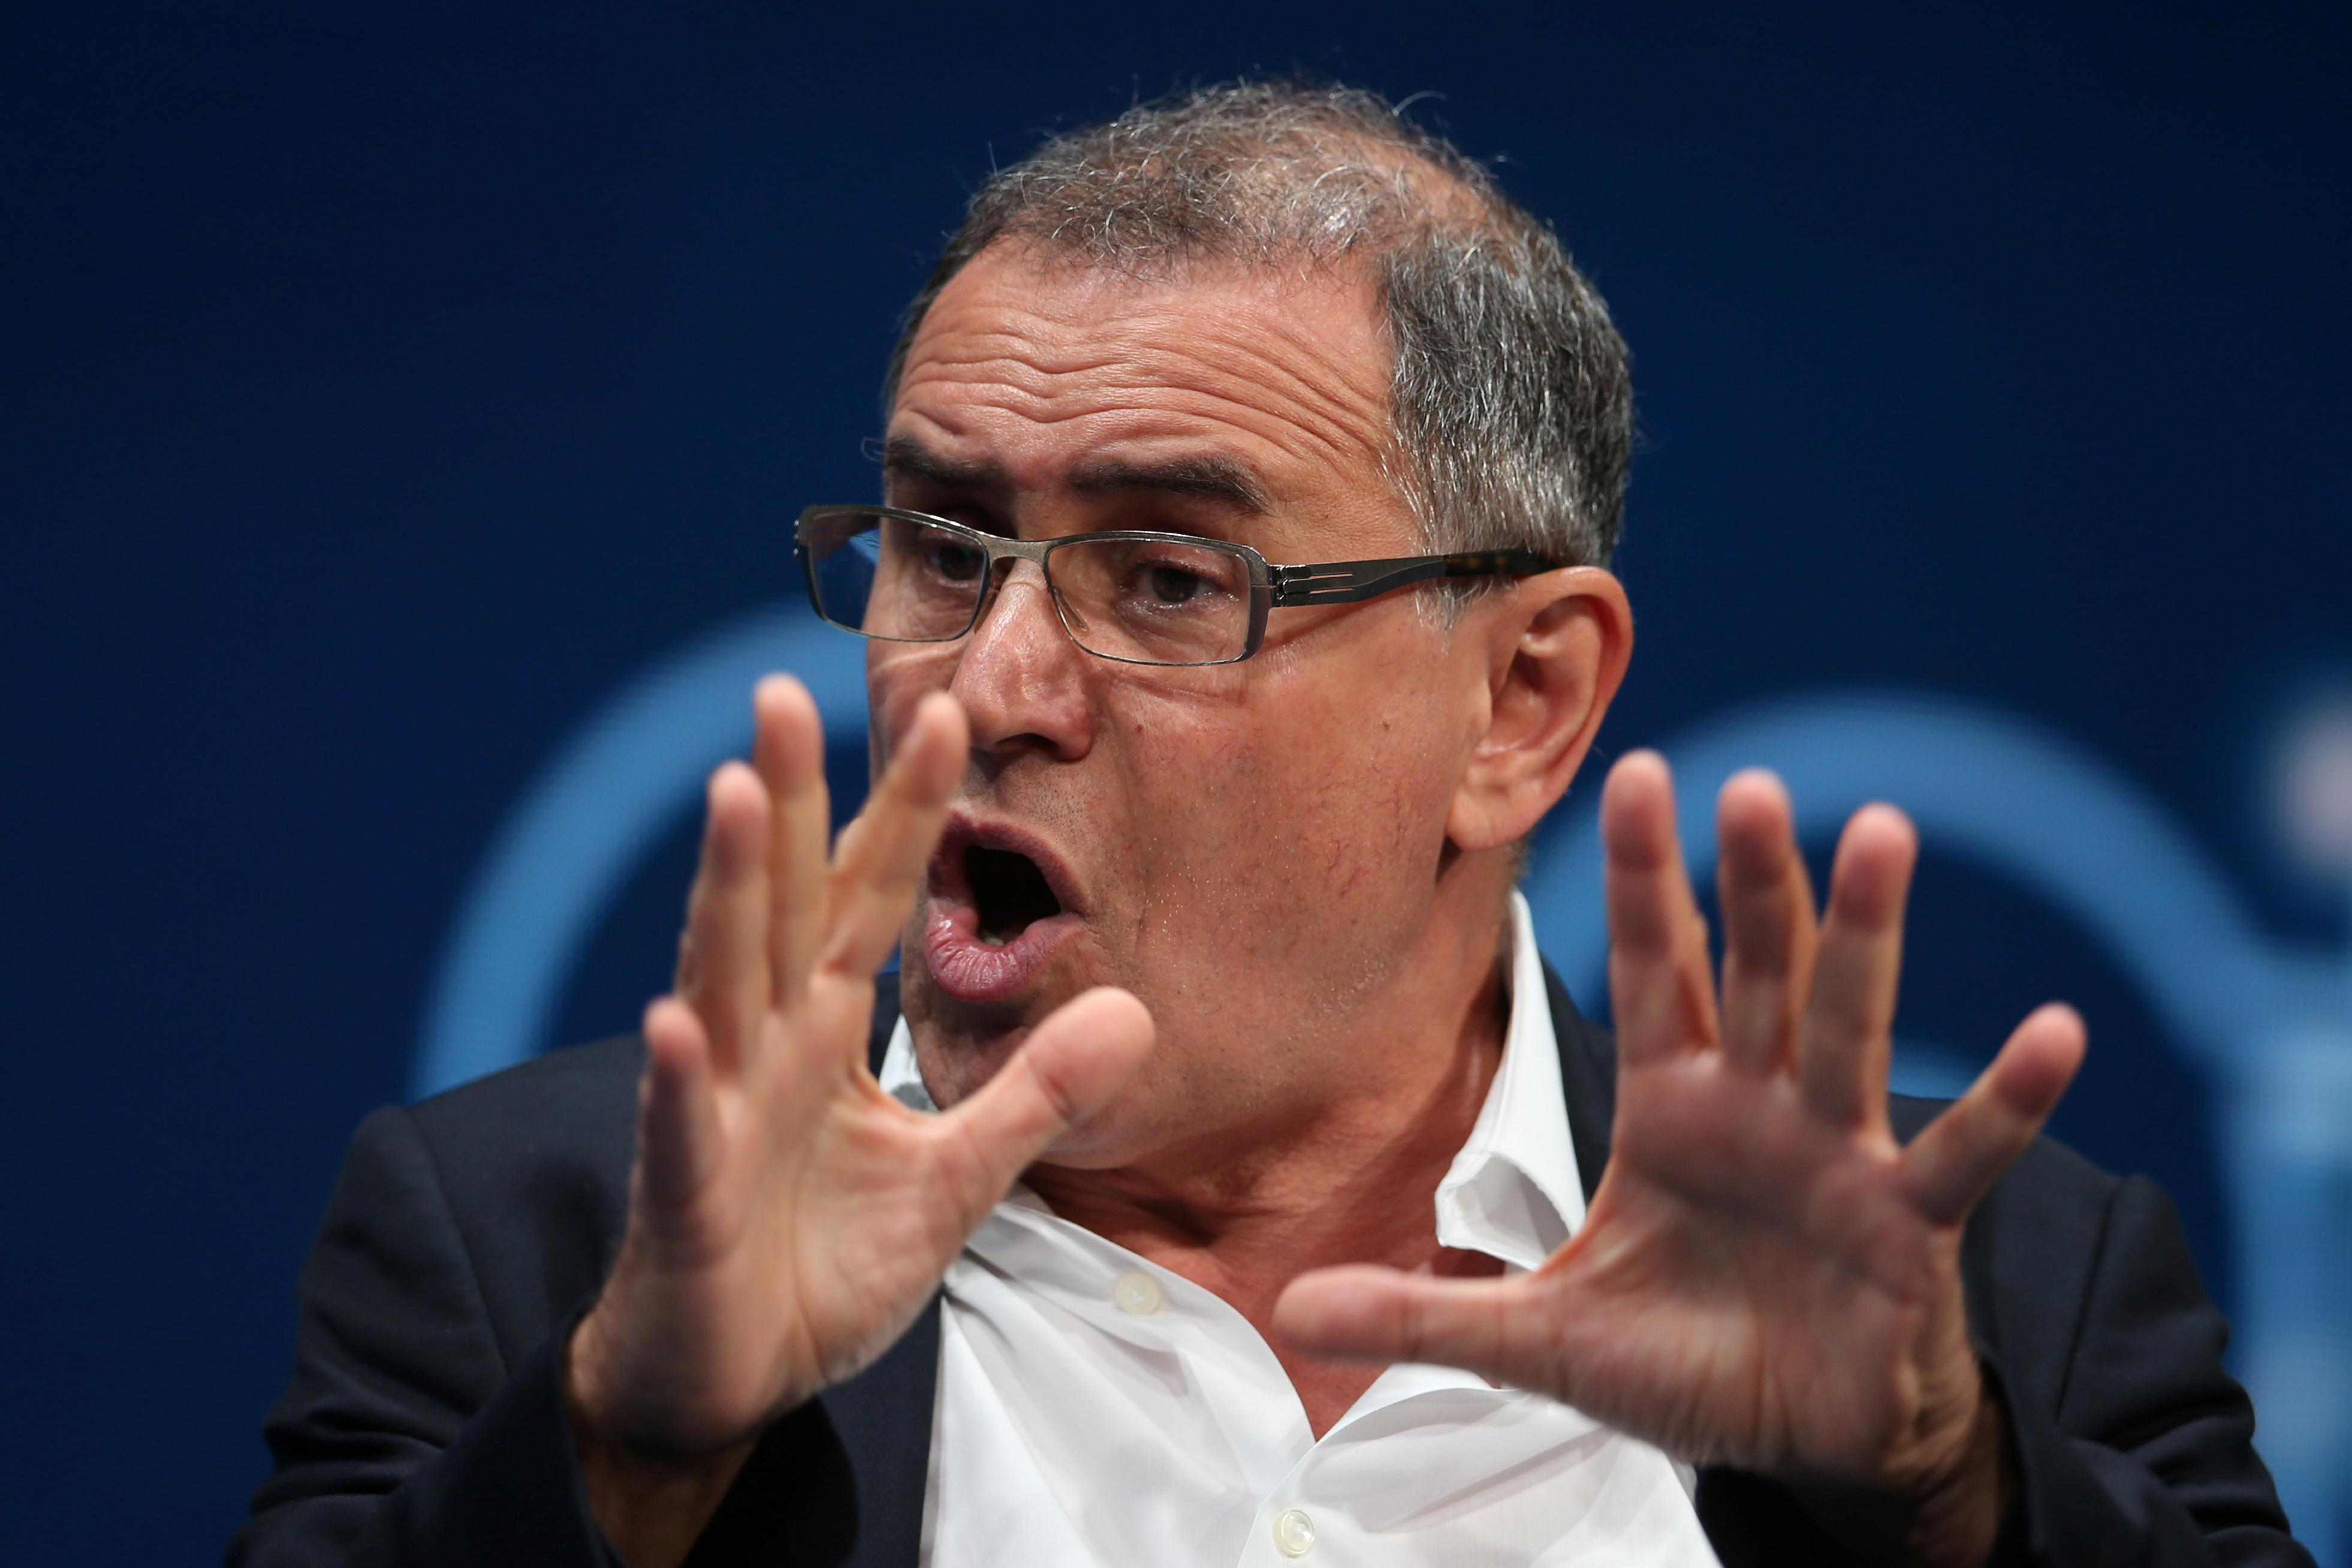 Nouriel Roubini warns there's a risk of a 'Greater Depression' as coronavirus spreads